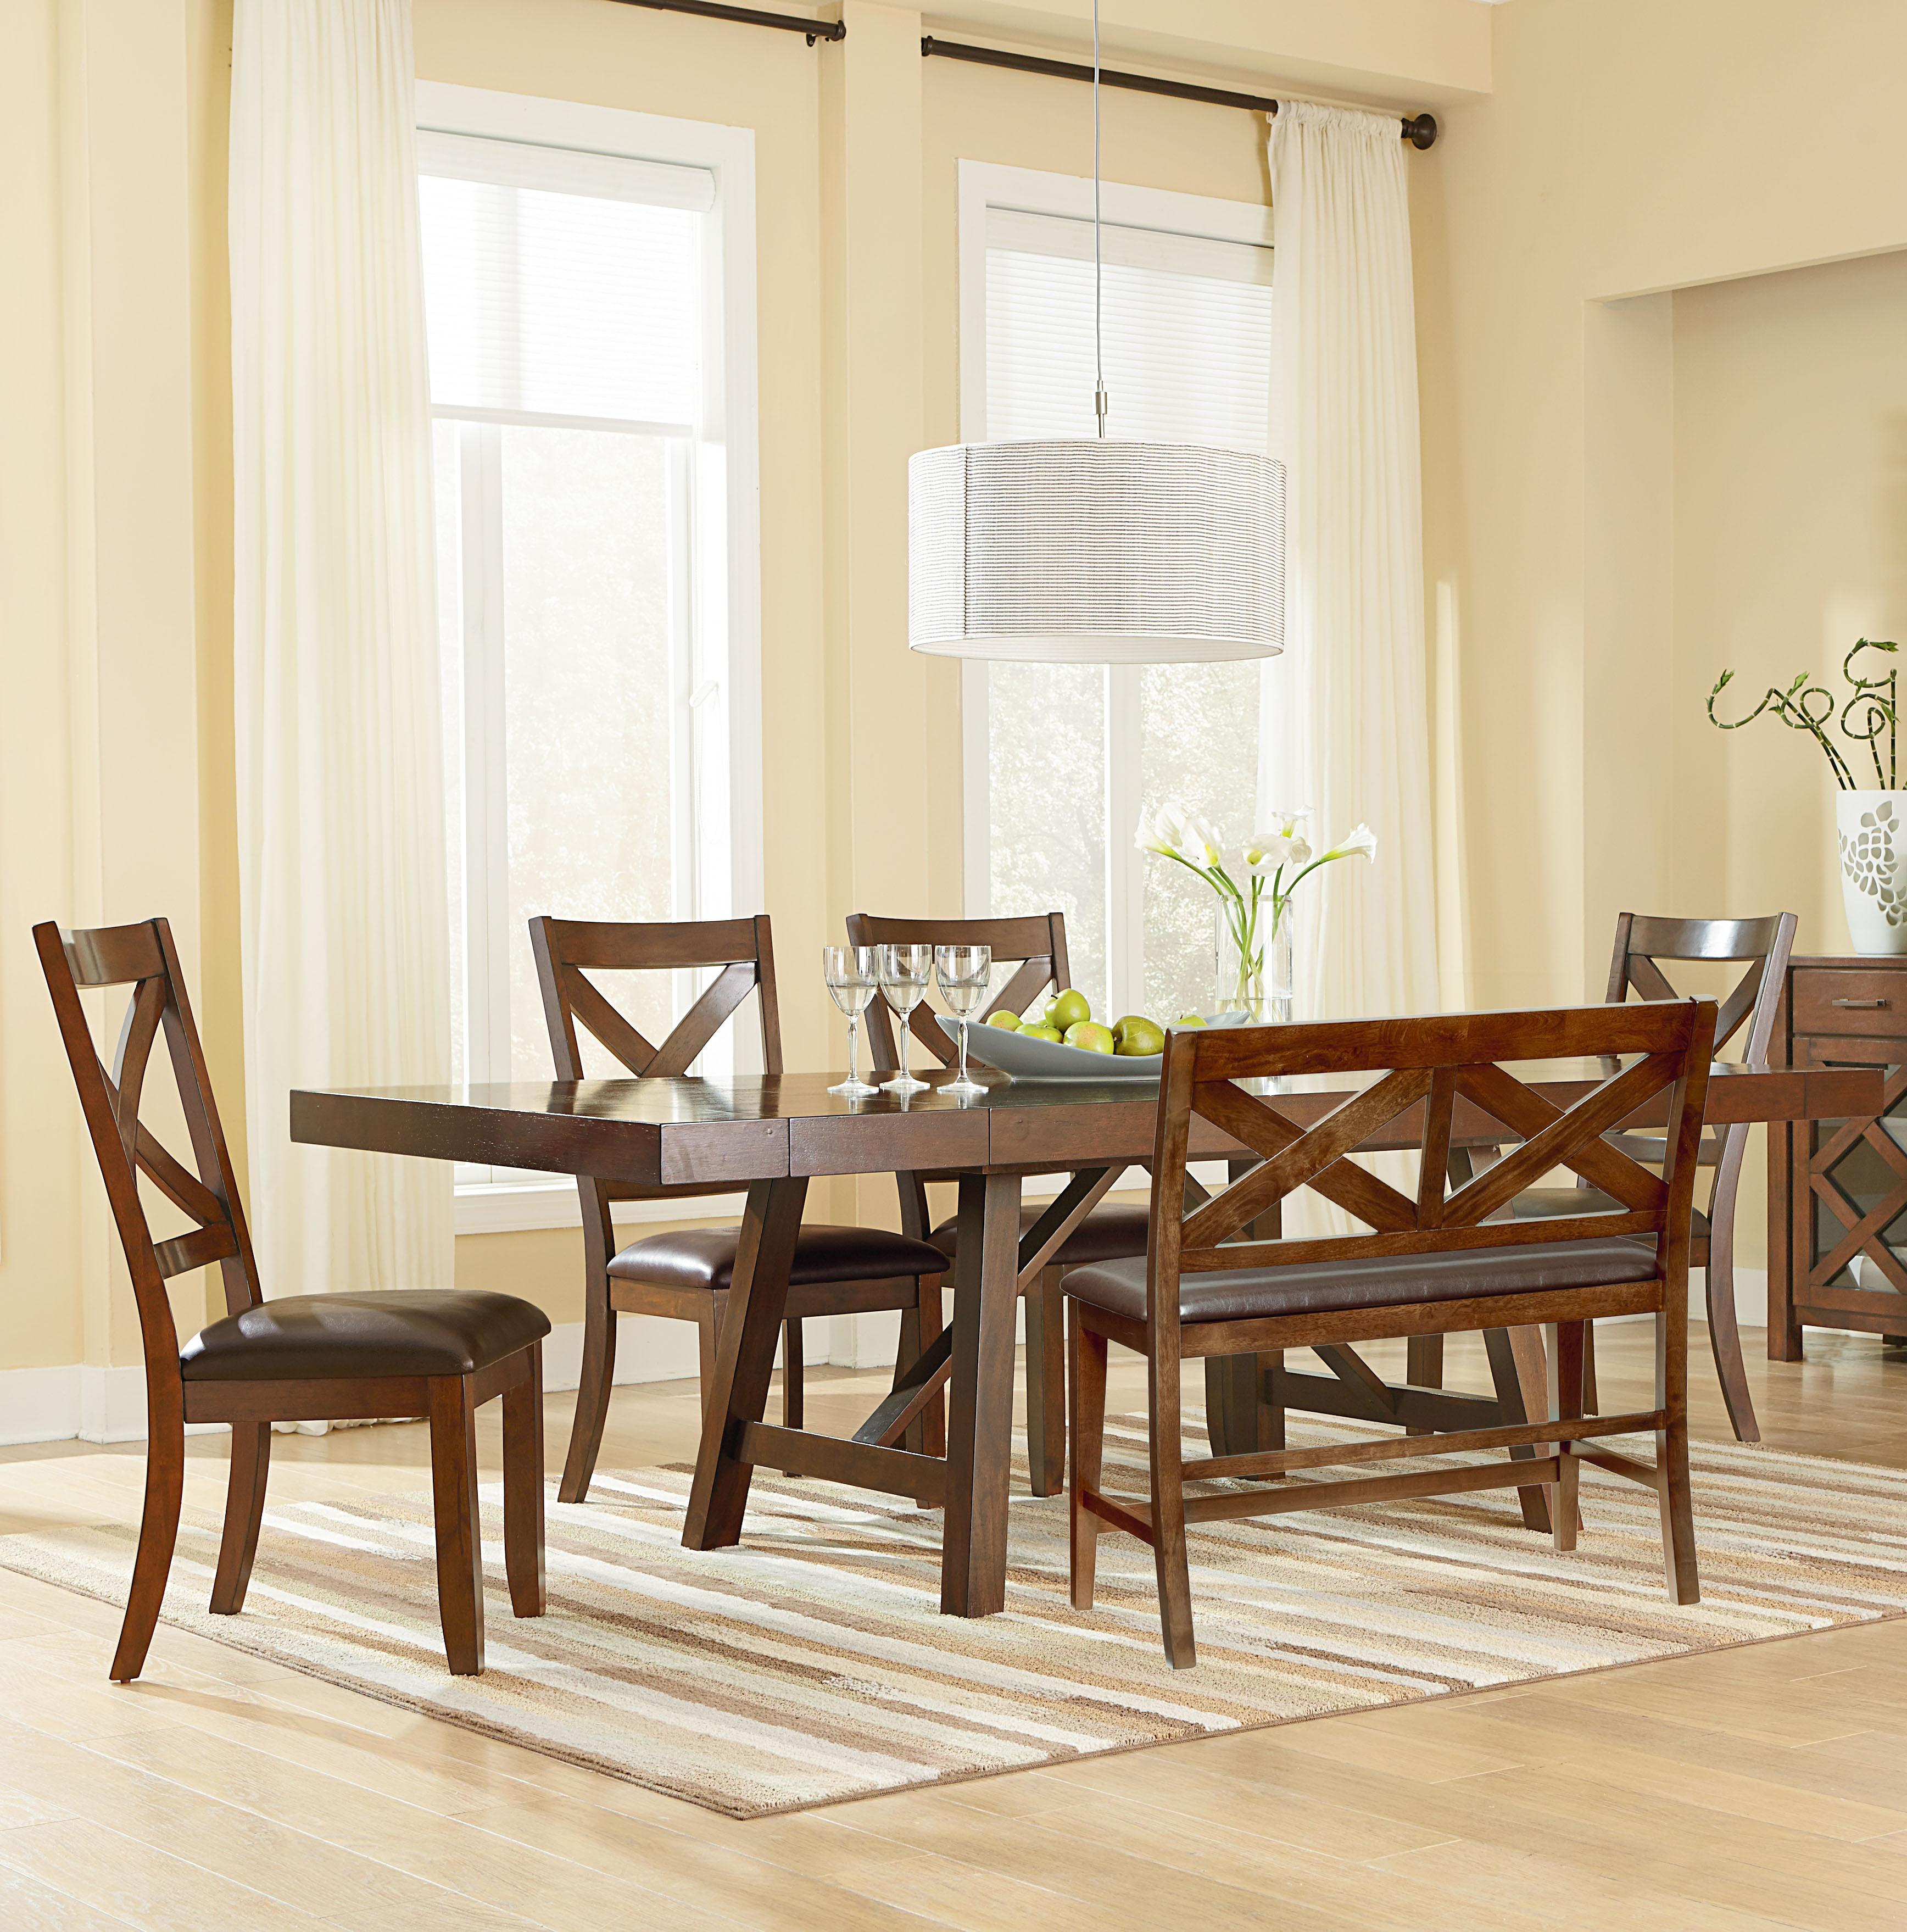 Standard Furniture Omaha Brown Table and Chair Set with Bench - Item Number: 16181+16189+4x16184